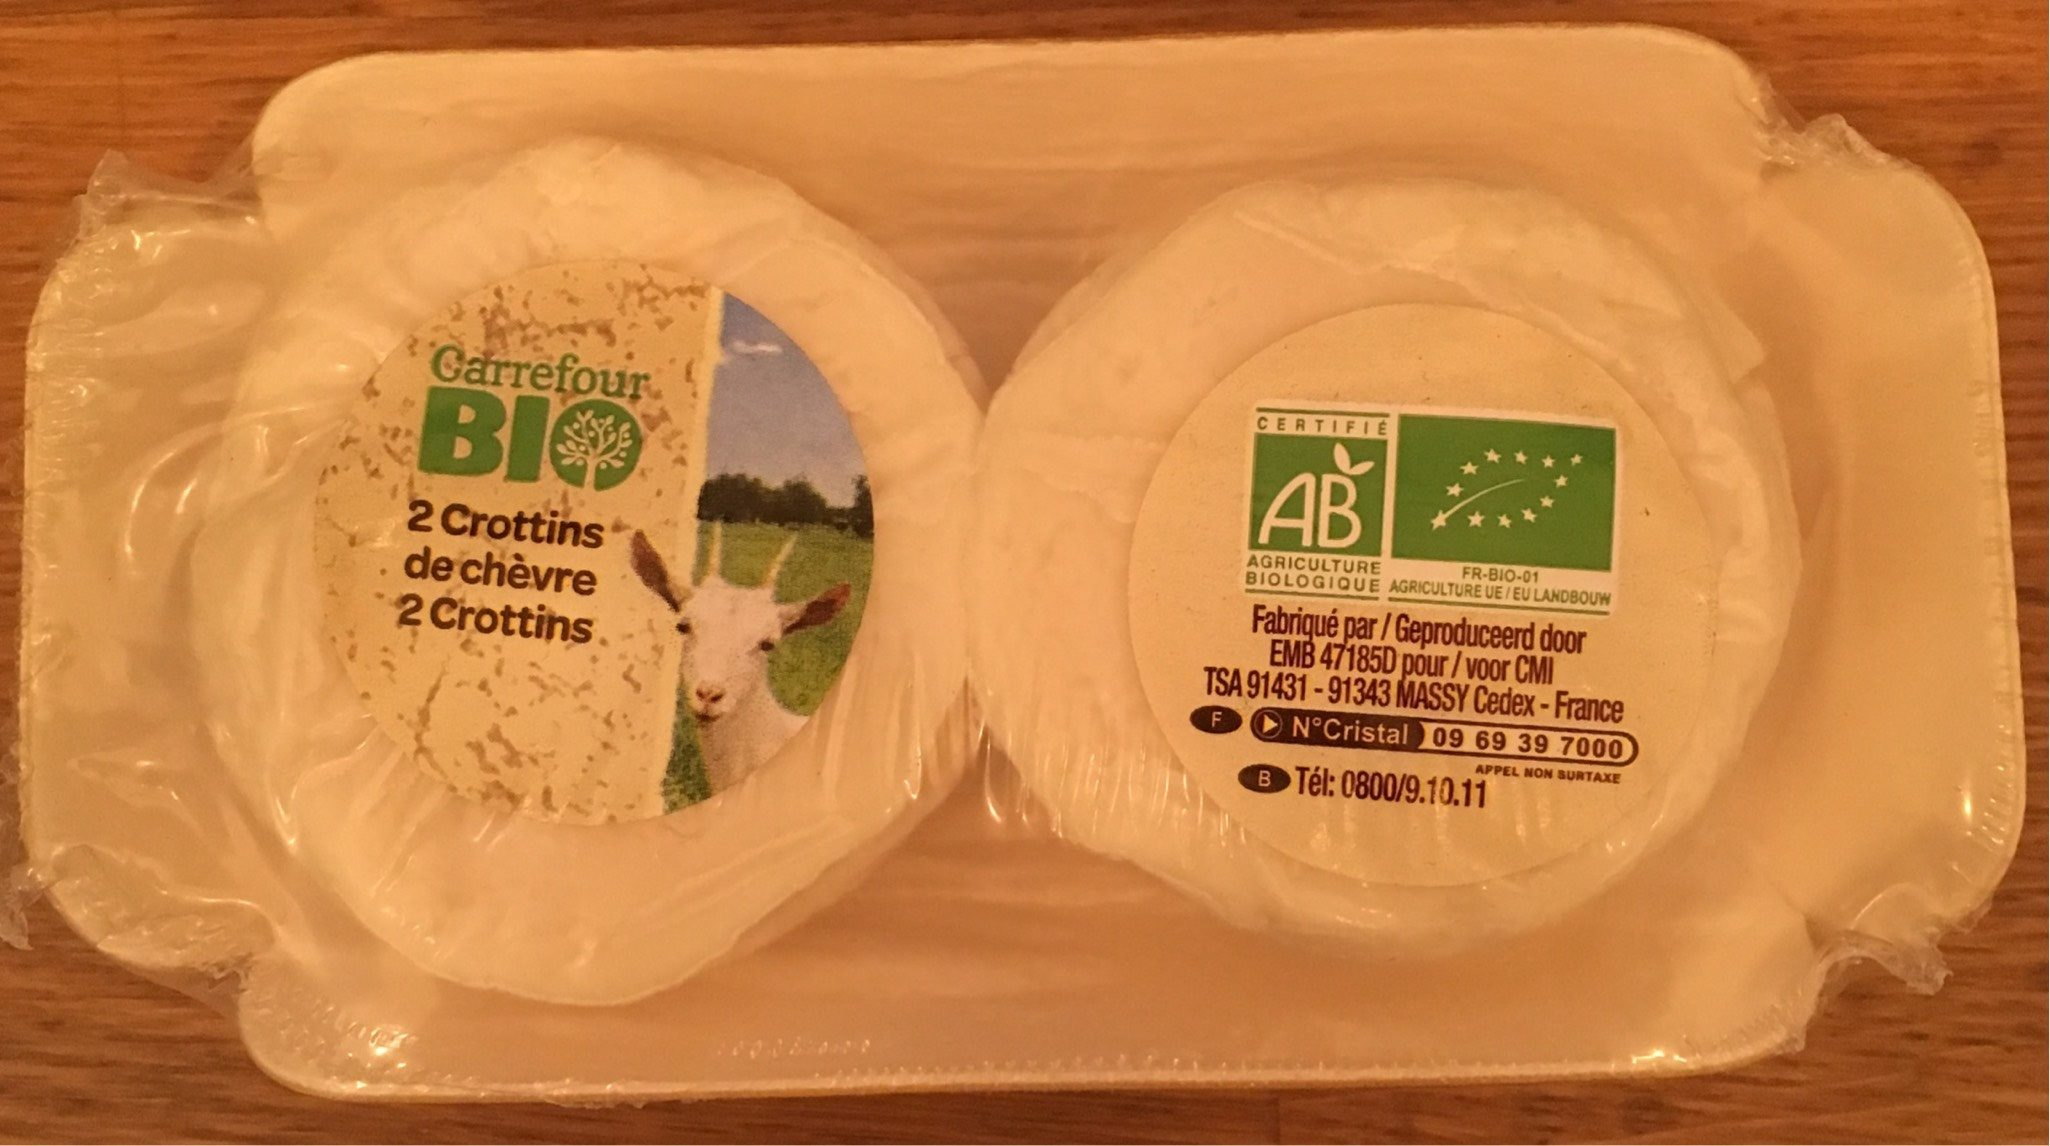 2 Crottins de chèvre - Product